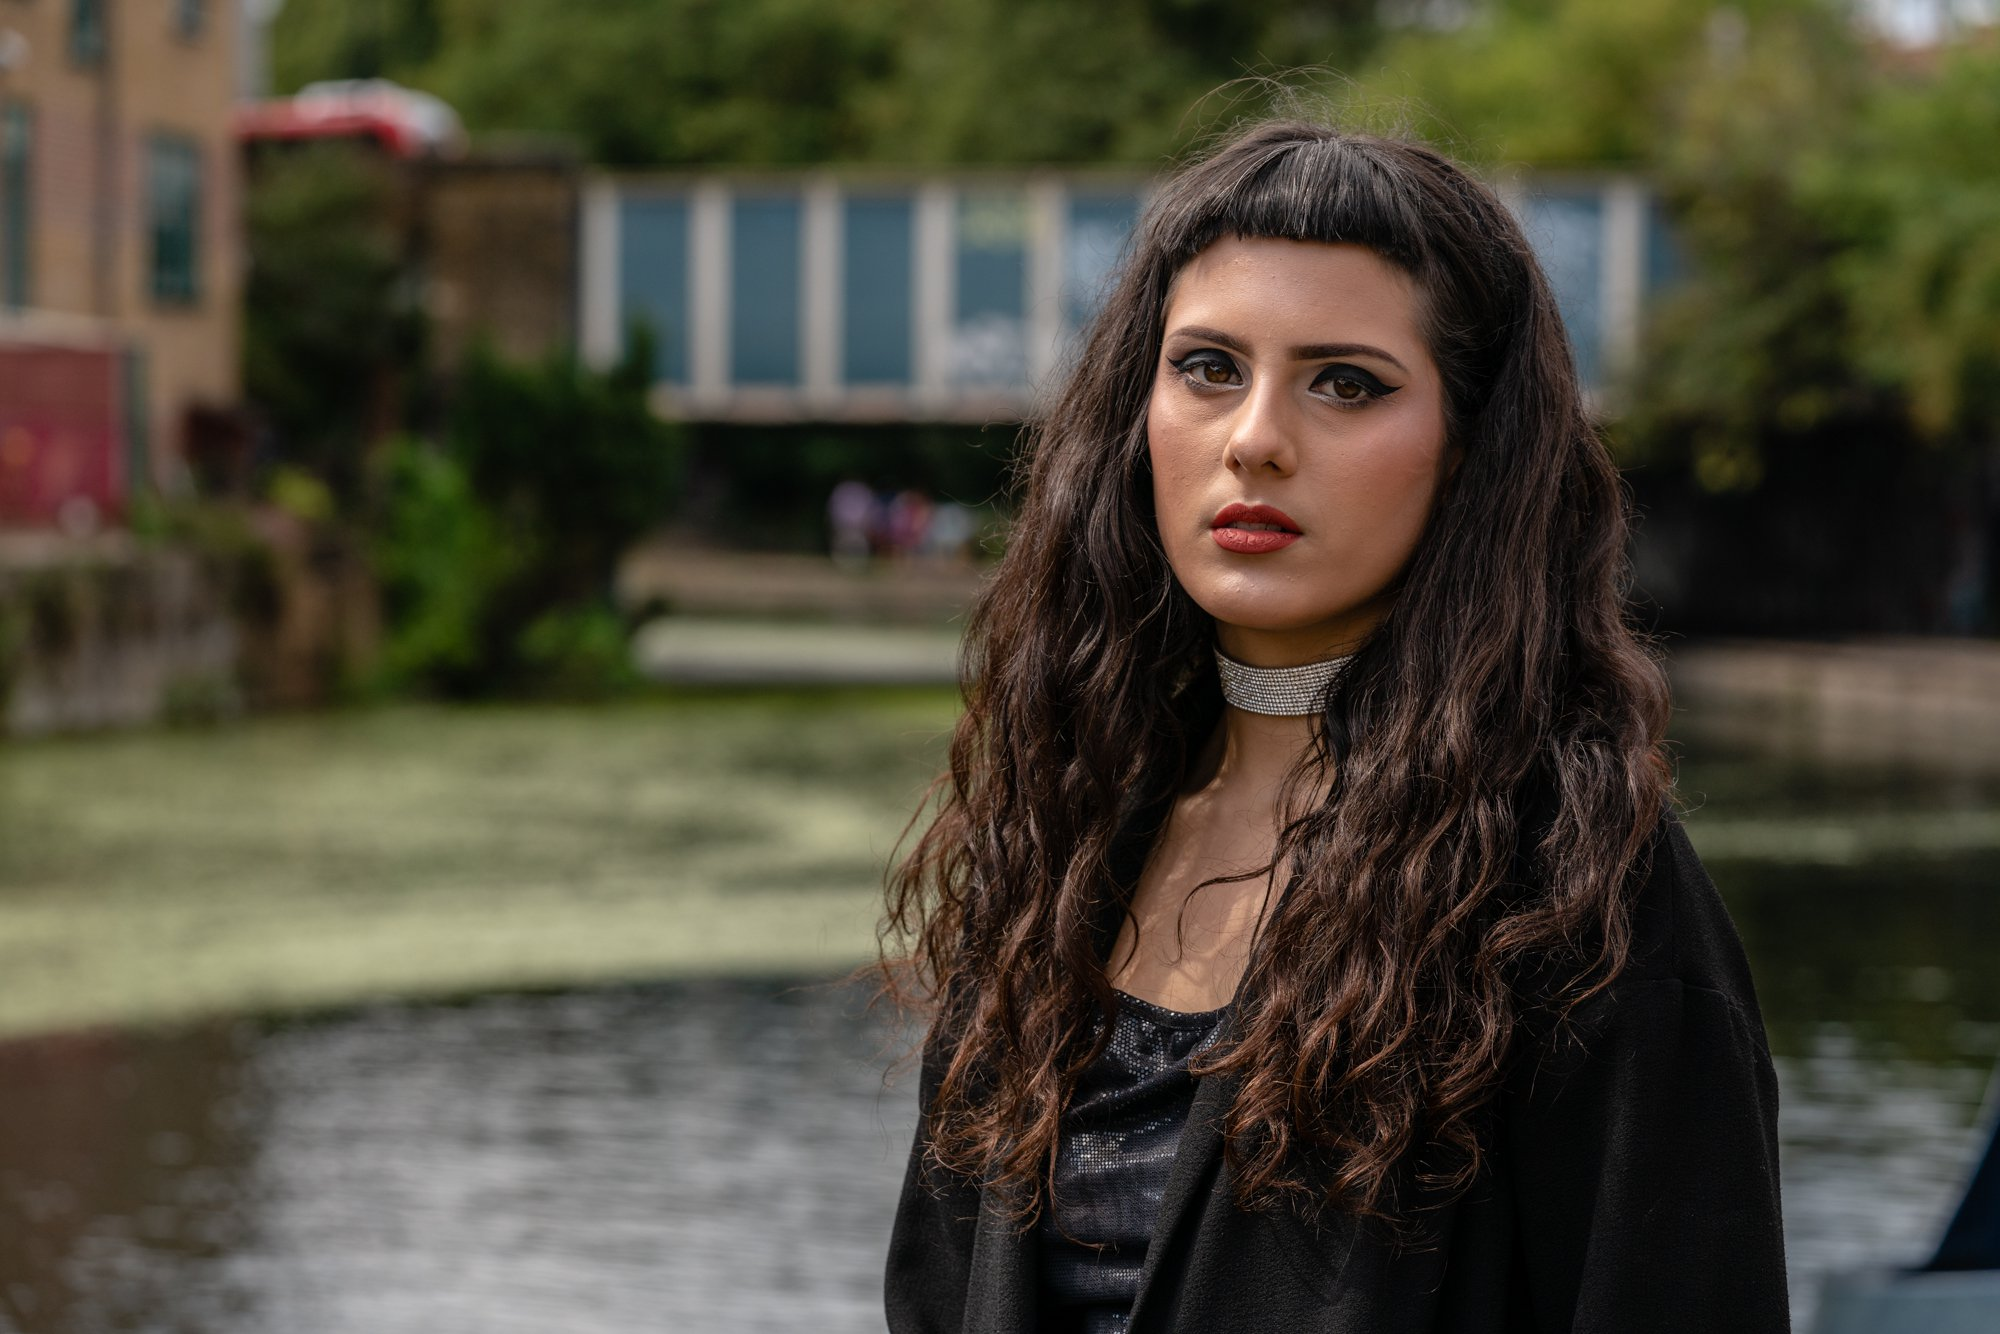 Lana, the author in front of a canal